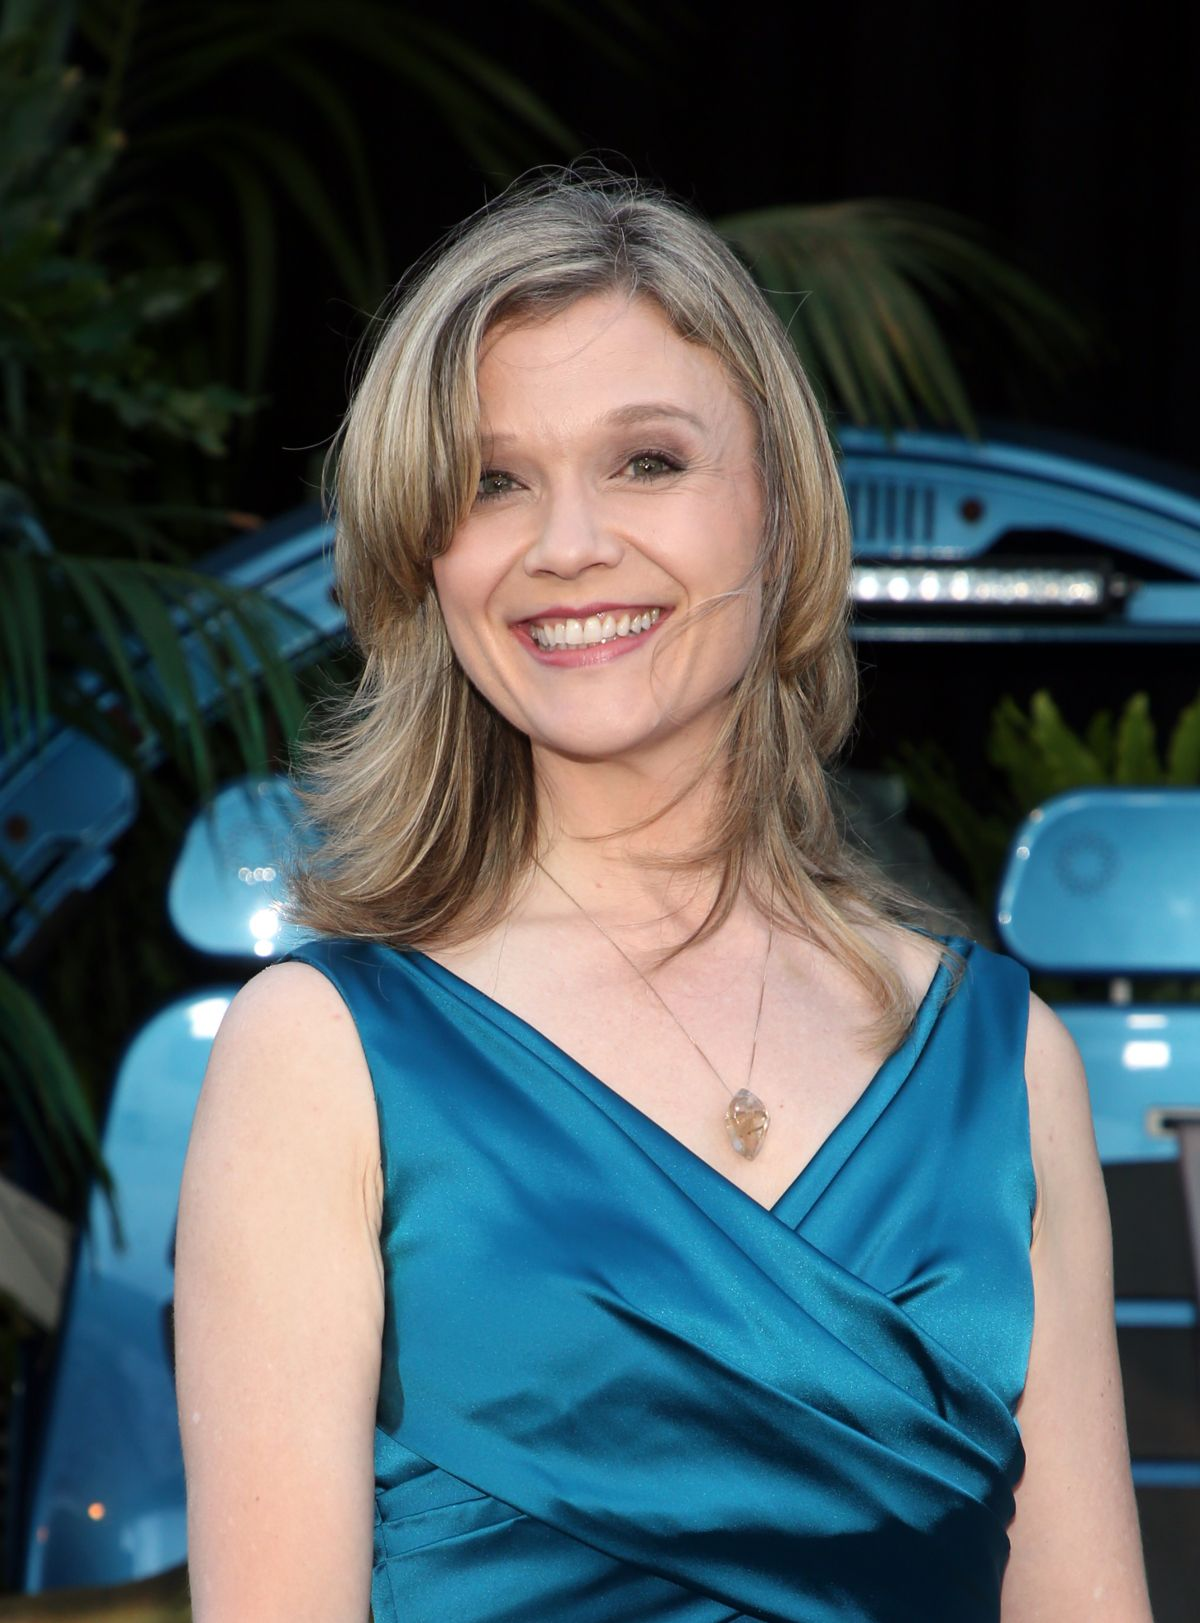 ¿Cuánto mide Ariana Richards? - Real height Ariana-richards-at-jurassic-world-fallen-kingdom-premiere-in-los-angeles-06-12-2018-4